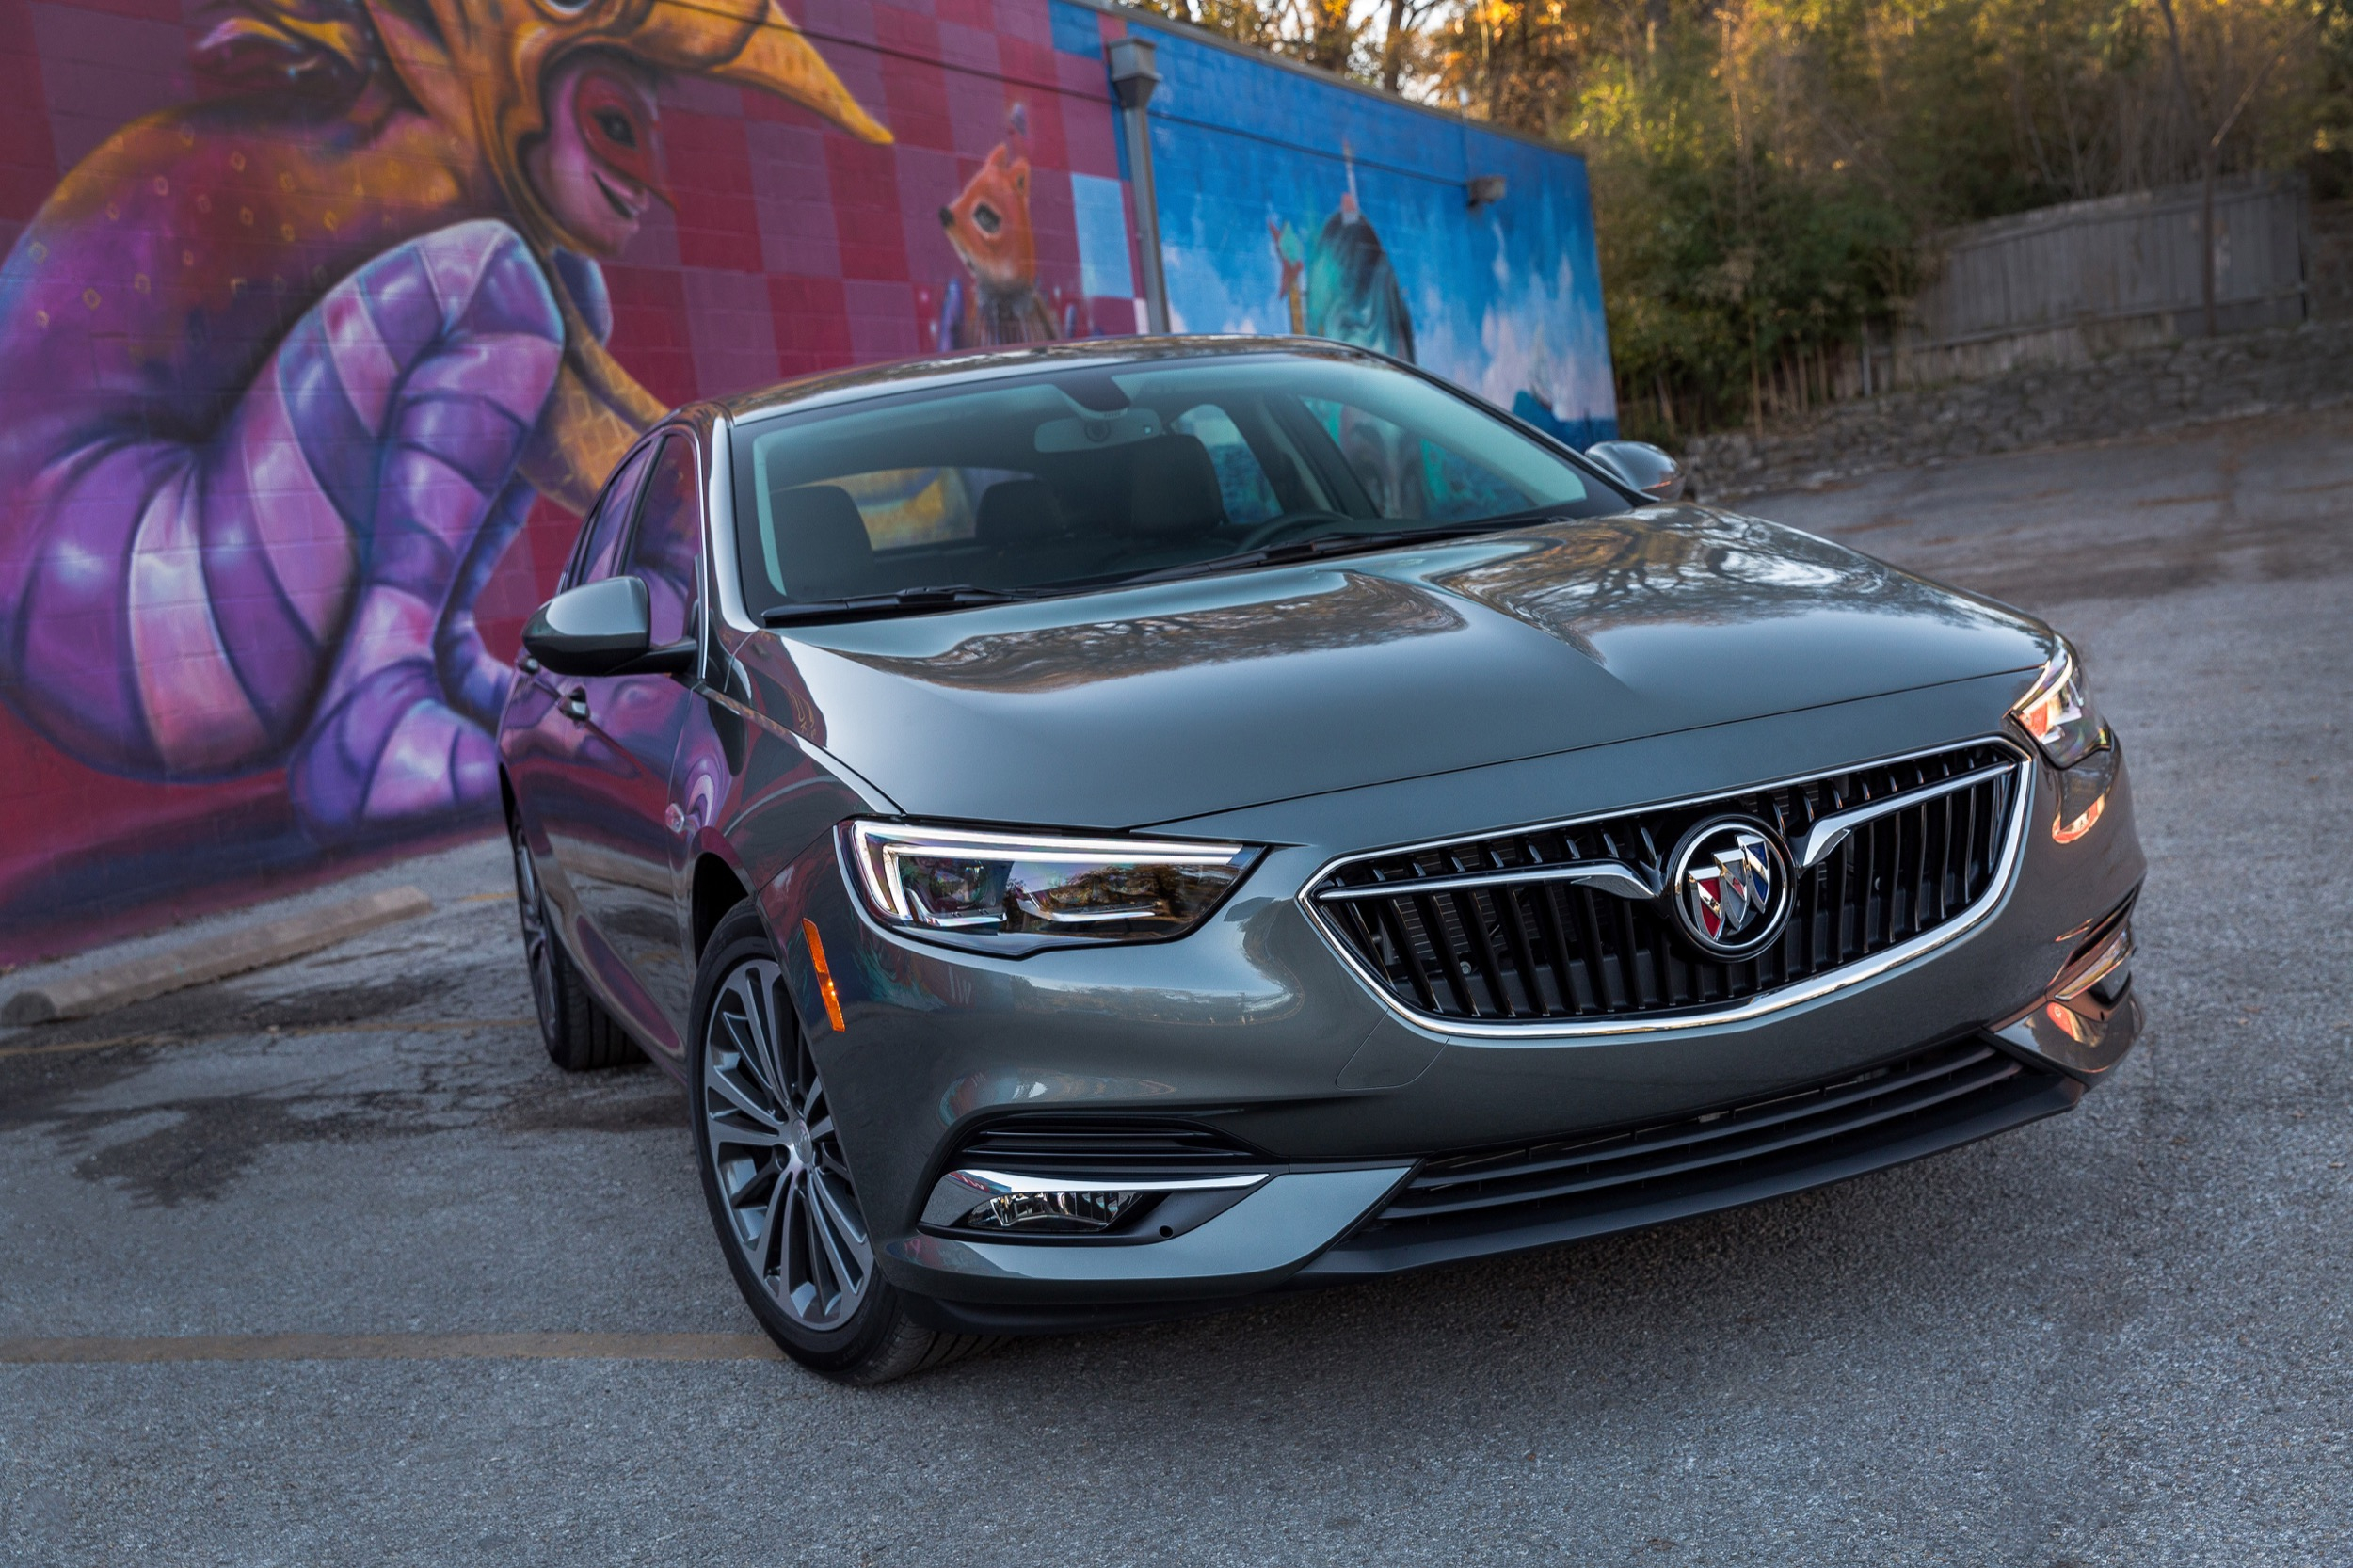 Little-Known Trick Will Disable Engine Auto-Stop-Start 2022 Buick Verano Weight, Maintenance Schedule, Awd